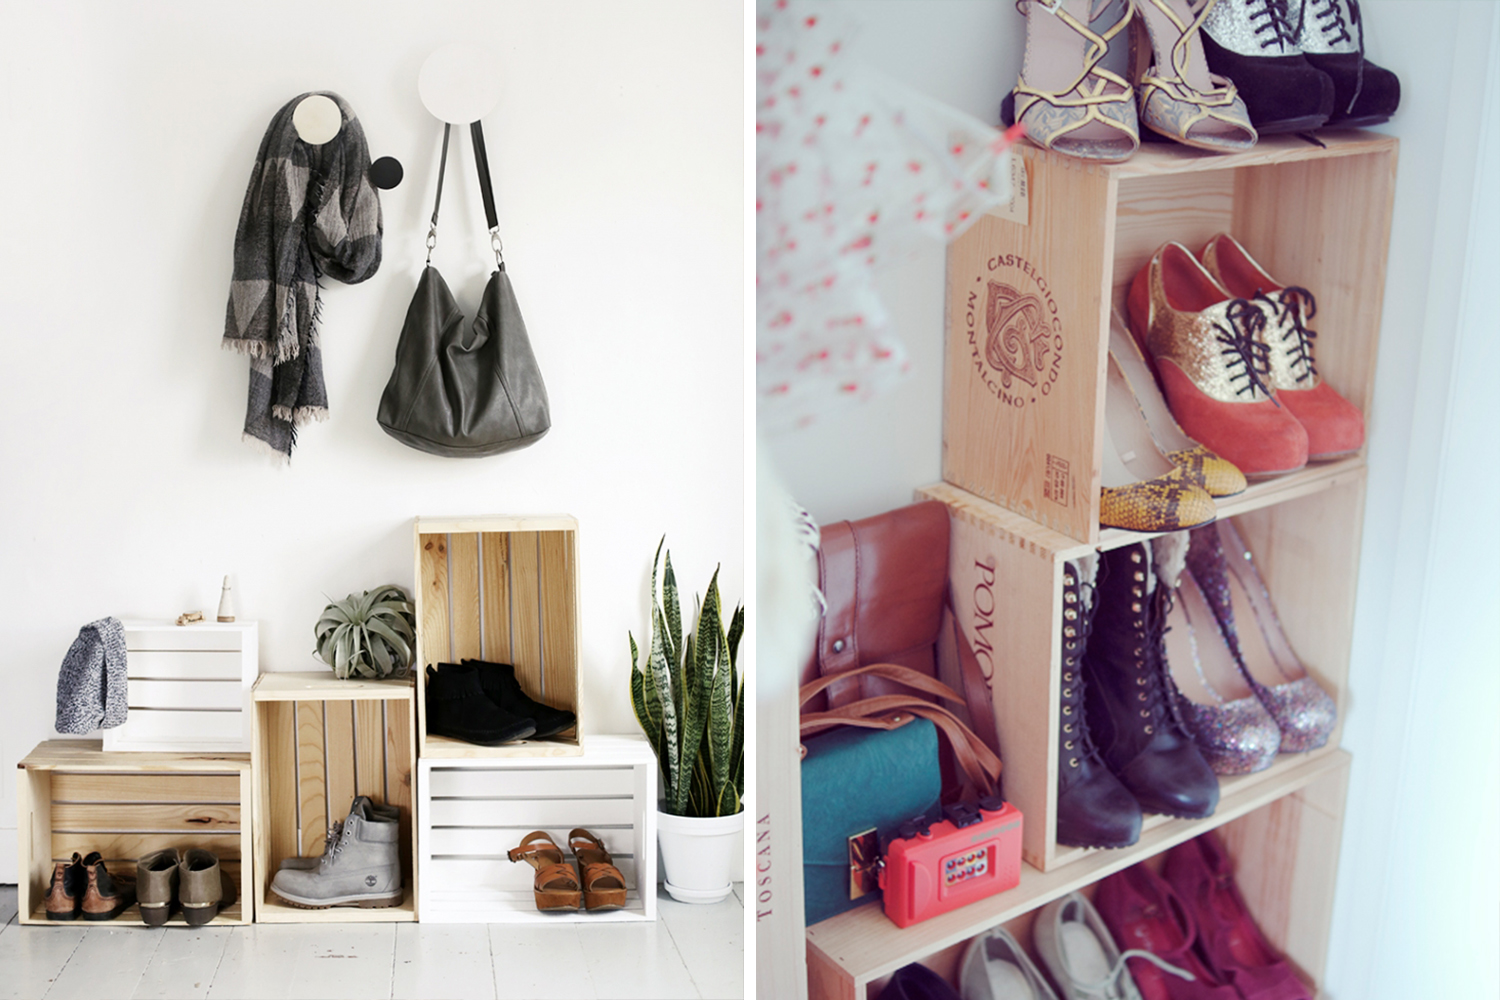 Crate Shoe Rack Entryway Organizing Ideas And Storage